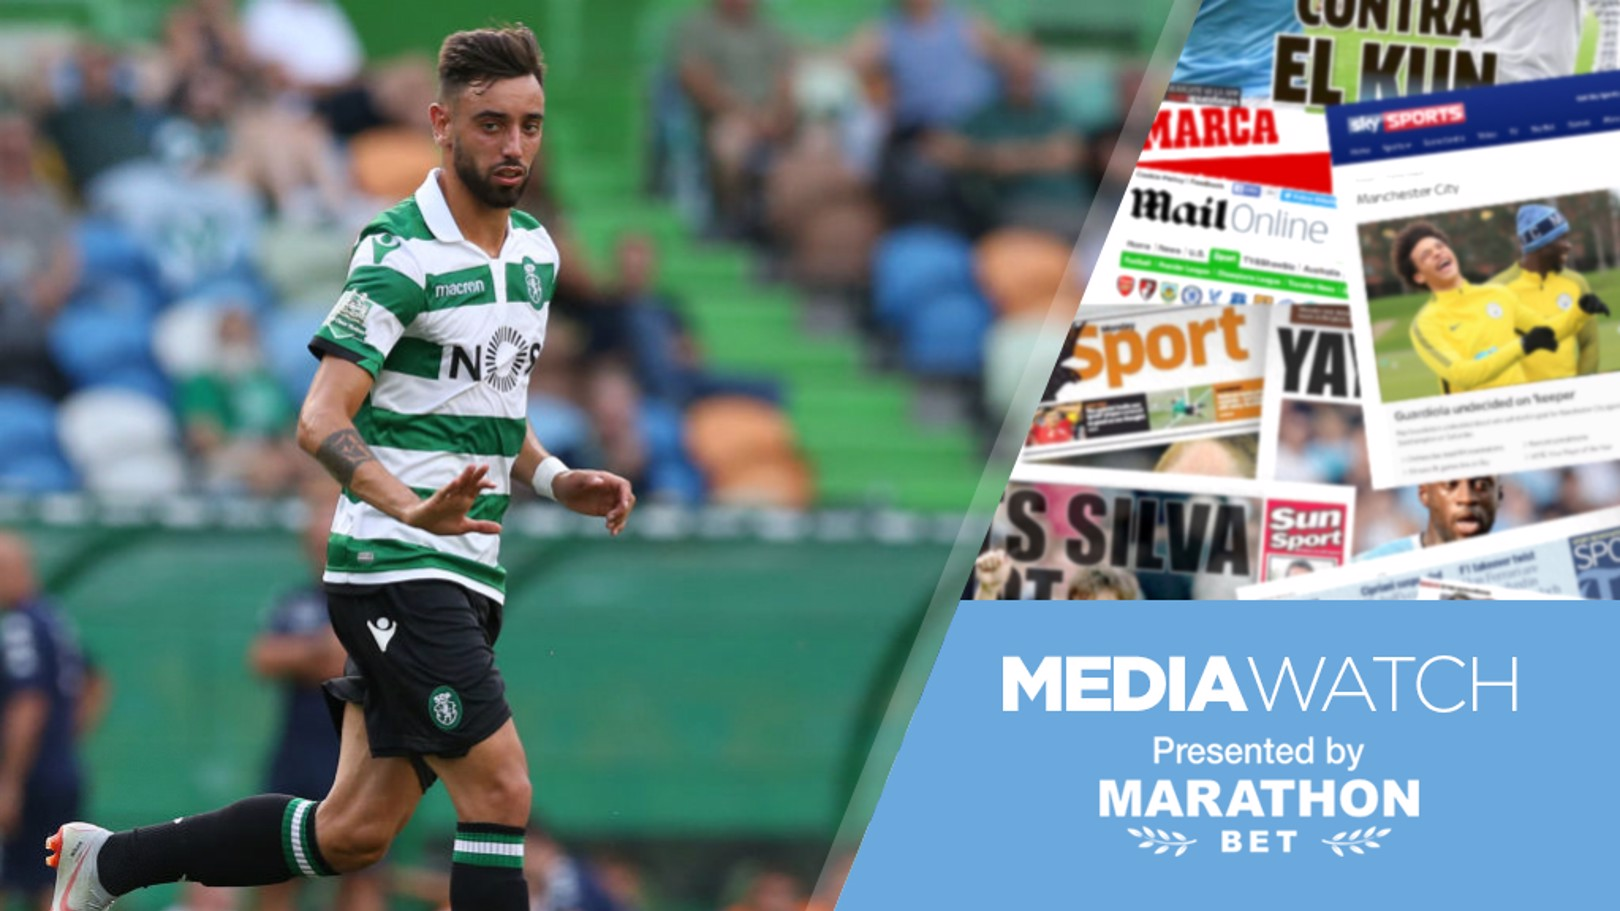 RUMOURS: Reports claim City are to begin talks over Bruno Fernandes.